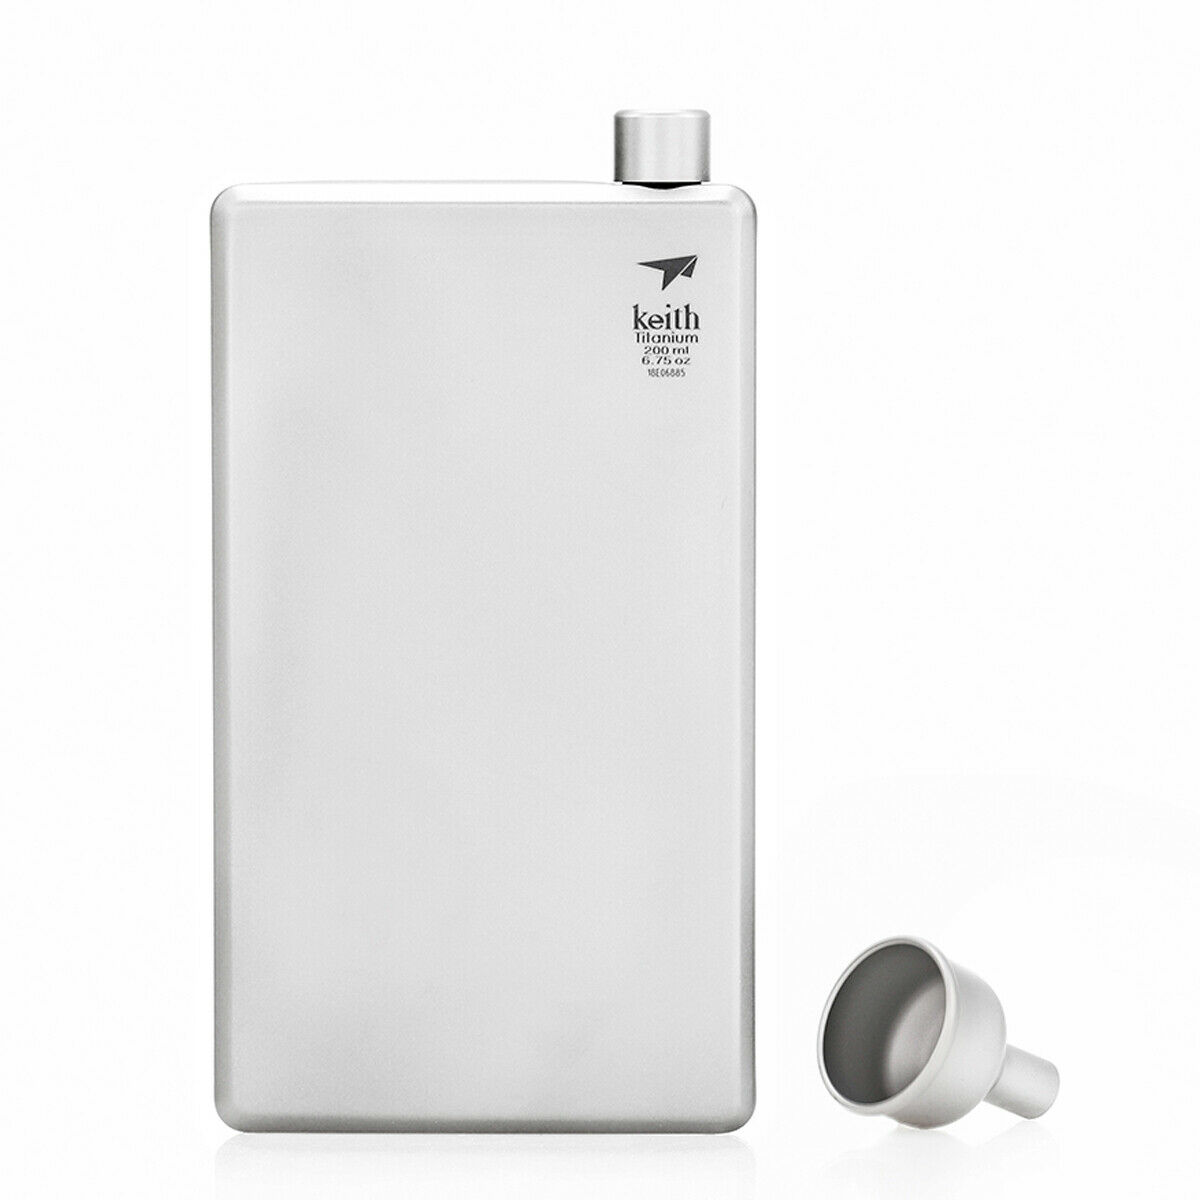 Keith Titanium Hip Flask Whiskey Alcohol Wine Bottle with Funnel Groomsmen Gift